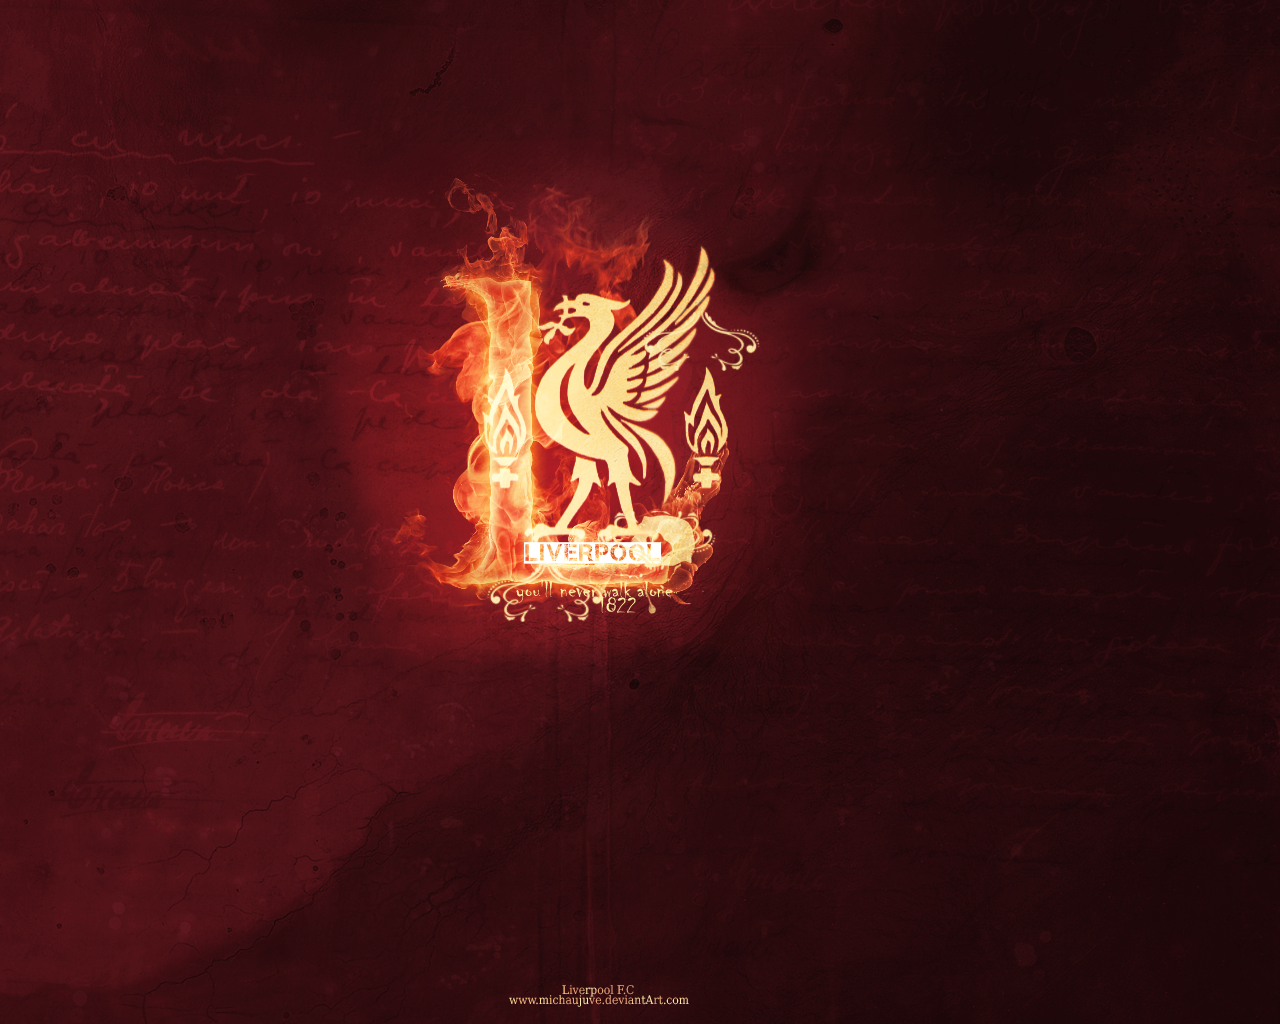 Wallpaper iphone liverpool - Liverpool Football Club Iphone S Wallpaper Iphone S Hd Wallpapers Pinterest Liverpool And Wallpaper